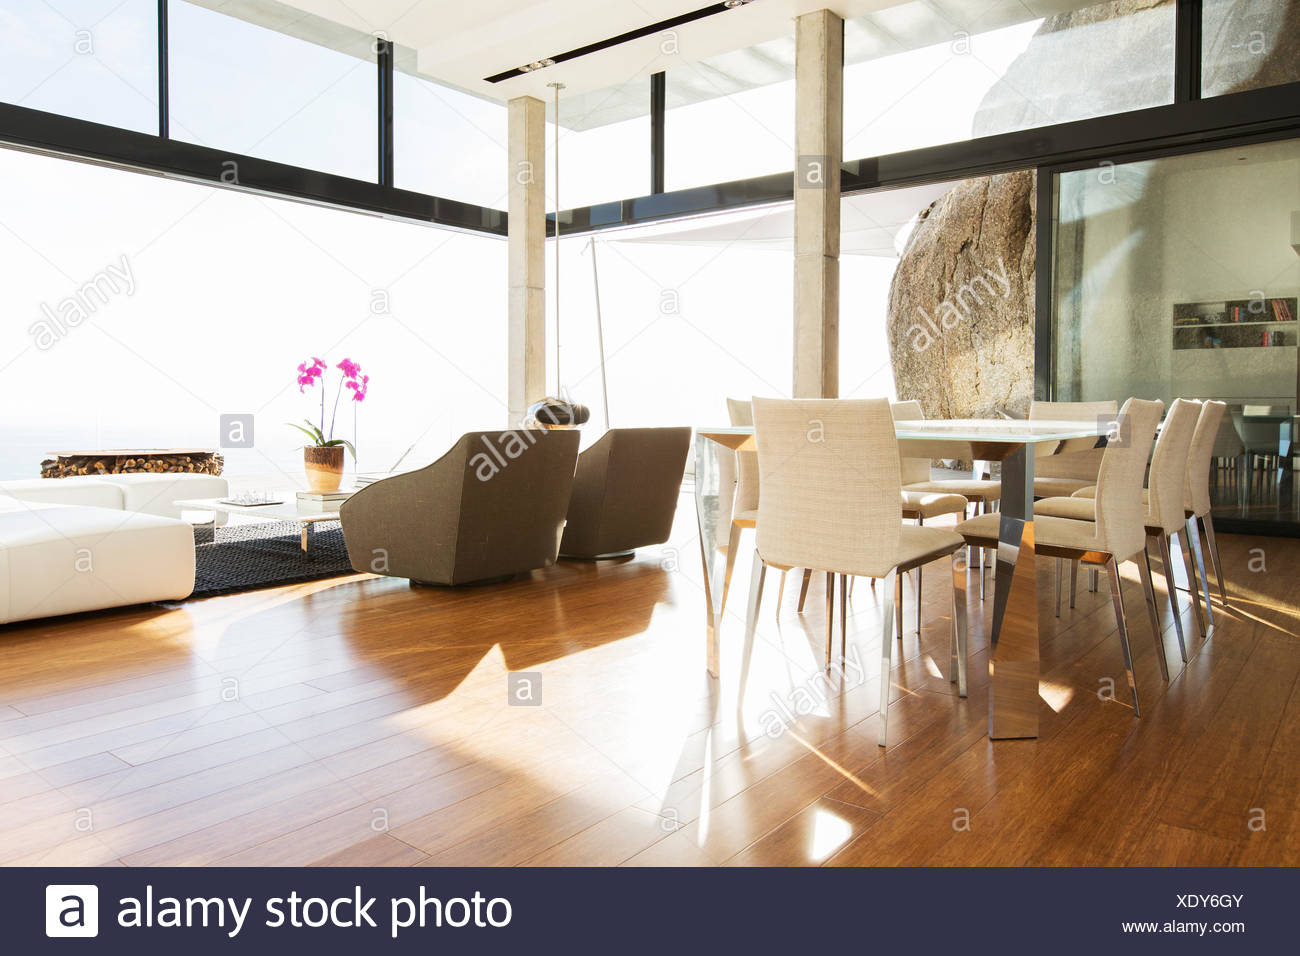 Dining and living area in modern house - Stock Image